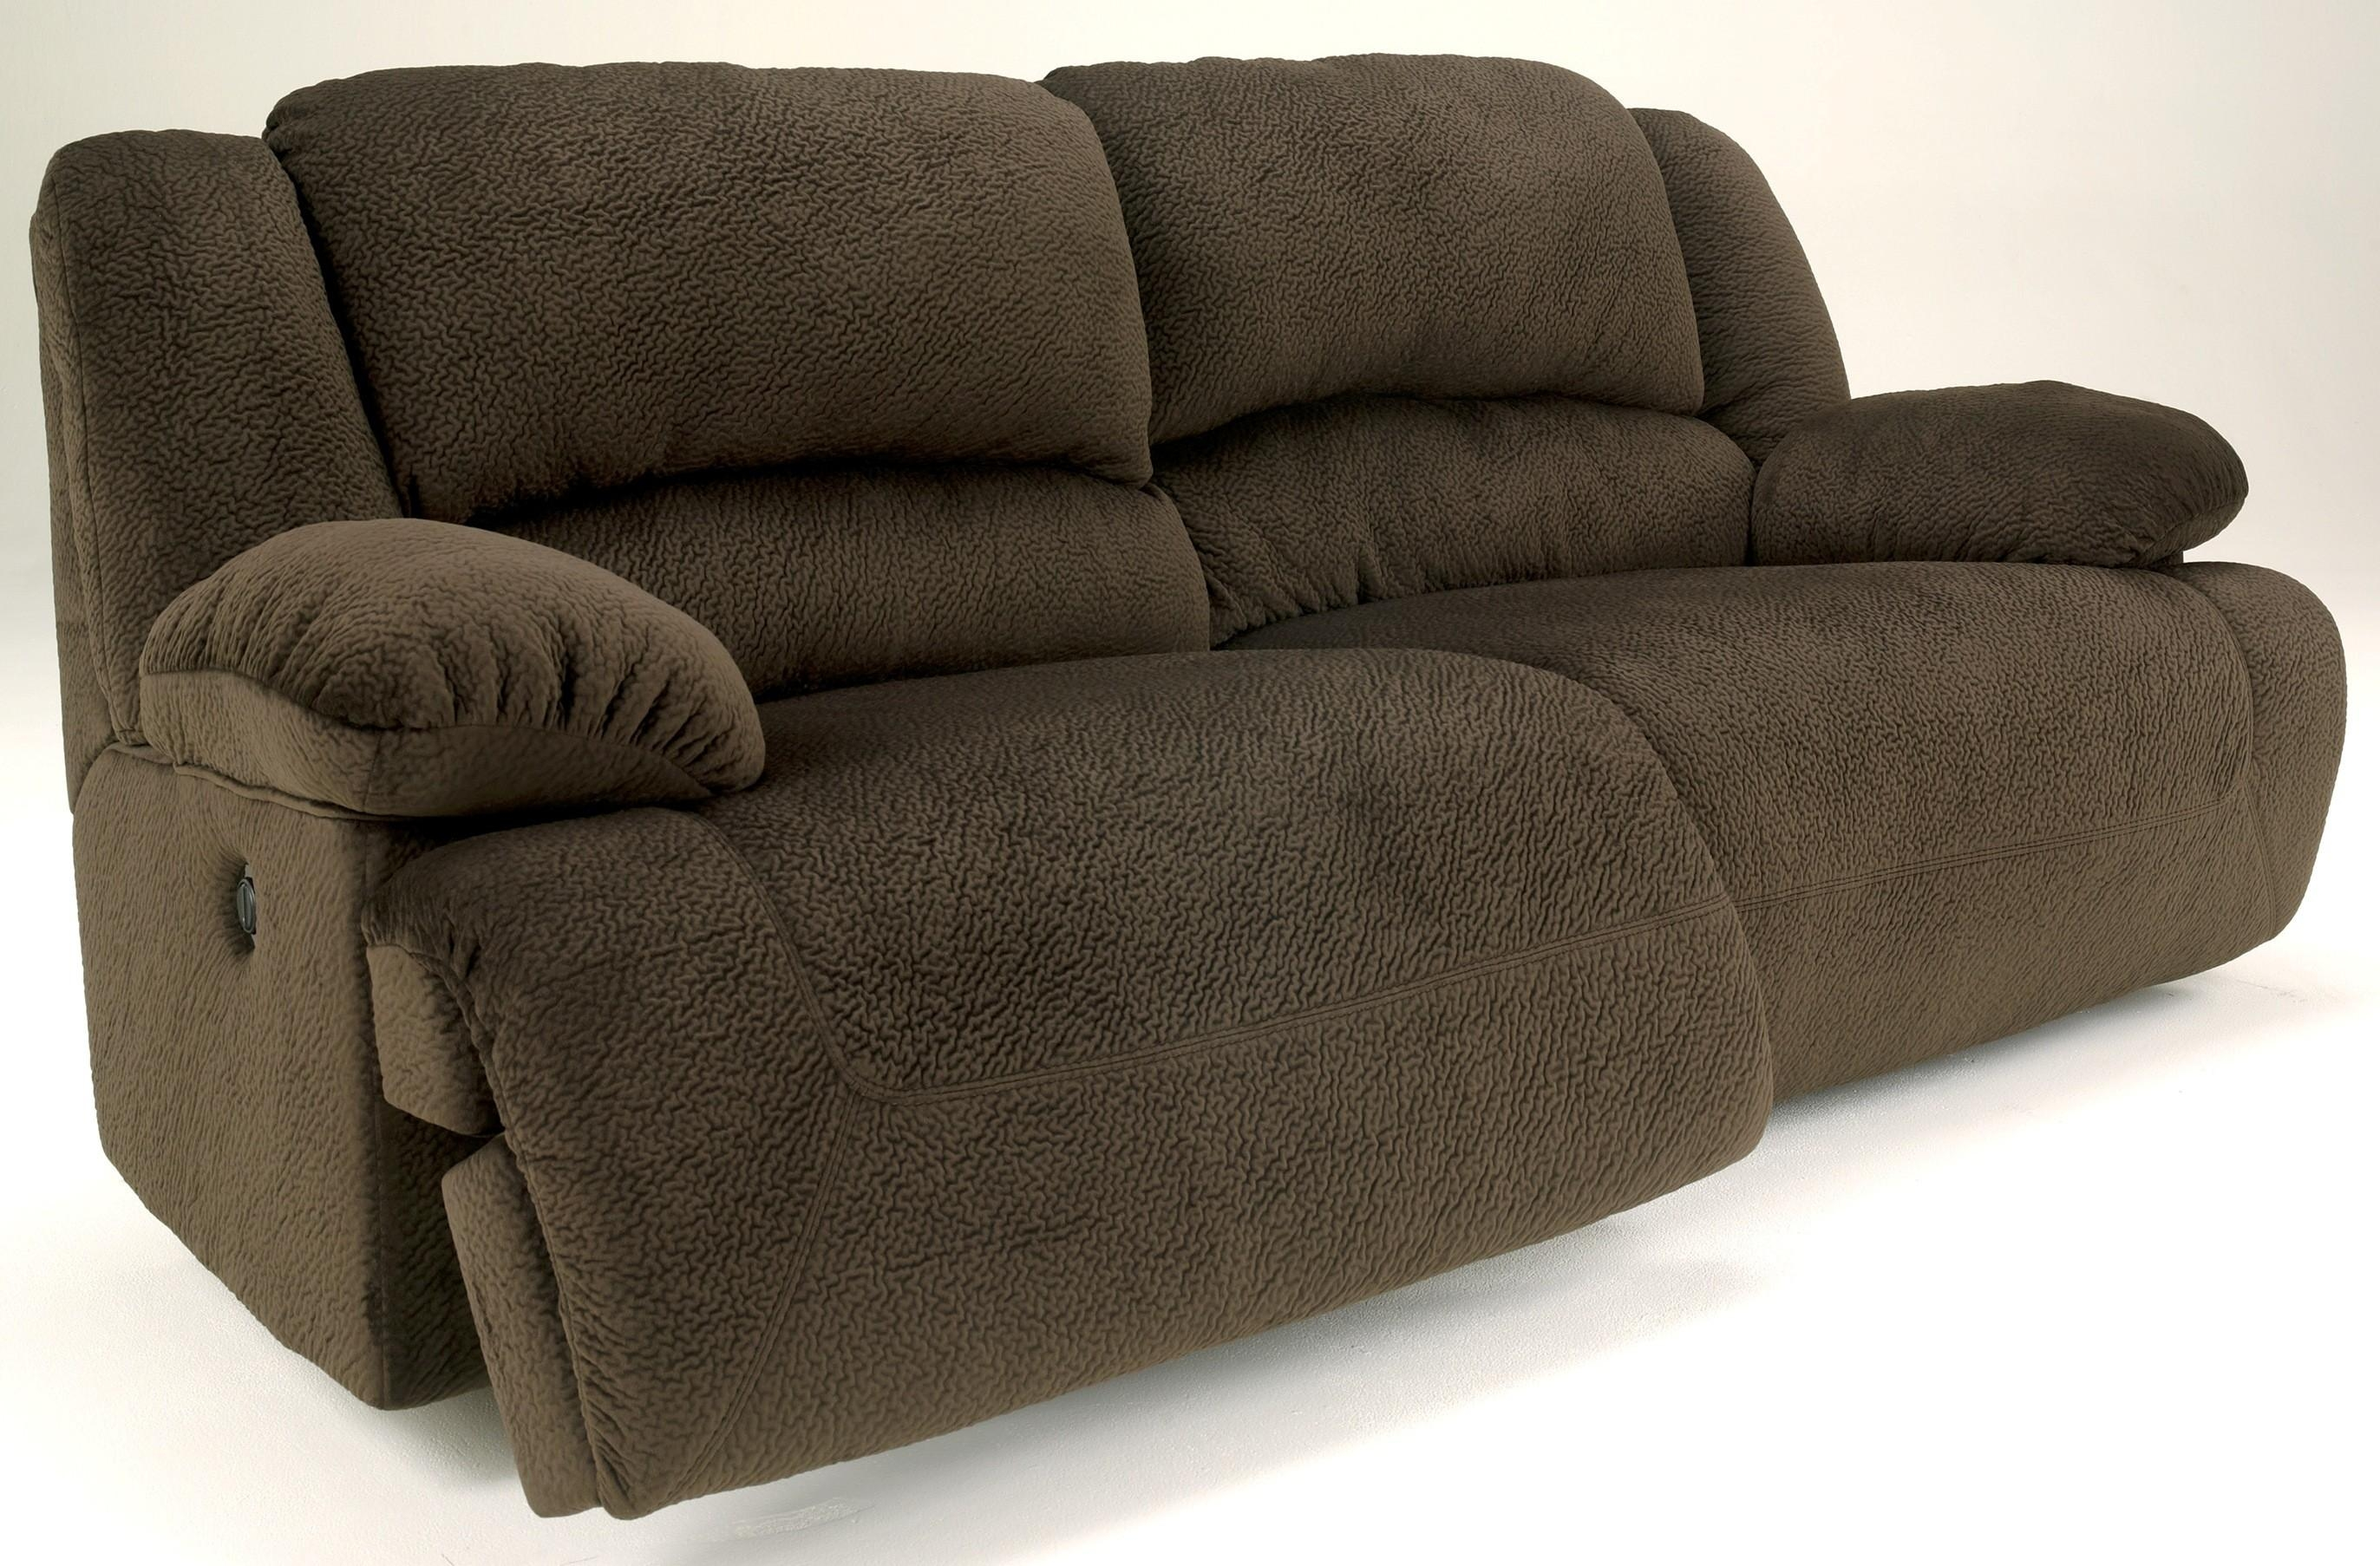 Toletta Chocolate 2 Seat Power Reclining Sofa From Ashley (5670147 Inside 2 Seat Recliner Sofas (Image 19 of 20)